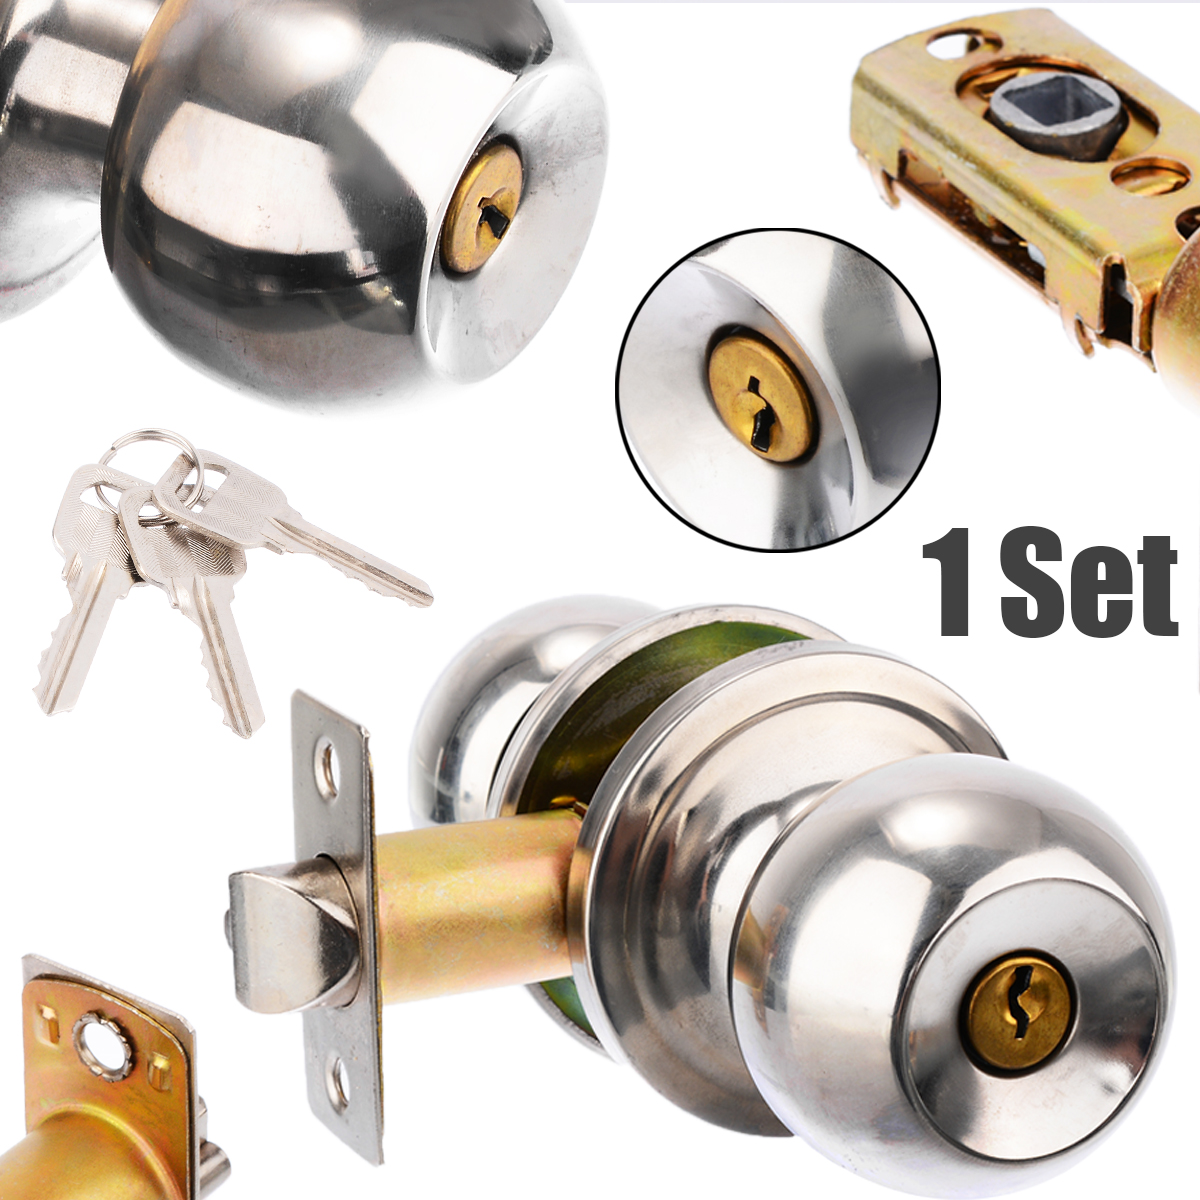 Mayitr Stainless Steel Round Ball Privacy Door Knob Set Bathroom Handle Lock With Key For Home Door Hardware SuppliesMayitr Stainless Steel Round Ball Privacy Door Knob Set Bathroom Handle Lock With Key For Home Door Hardware Supplies